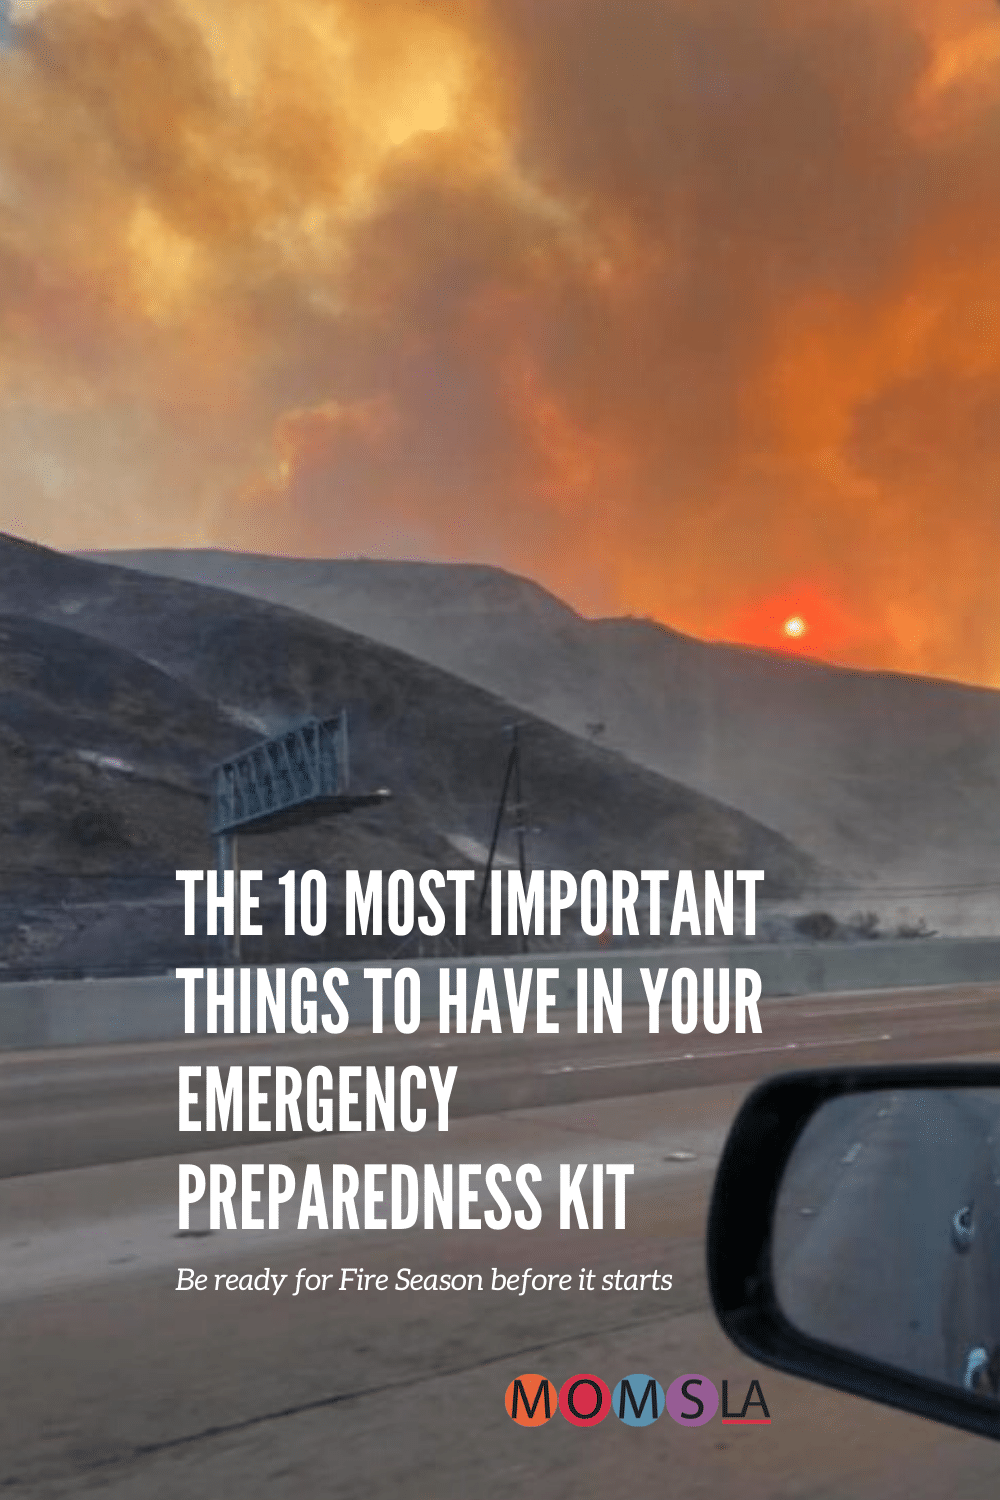 skirball fire 2018 emergency preparedness kit be ready for fire season